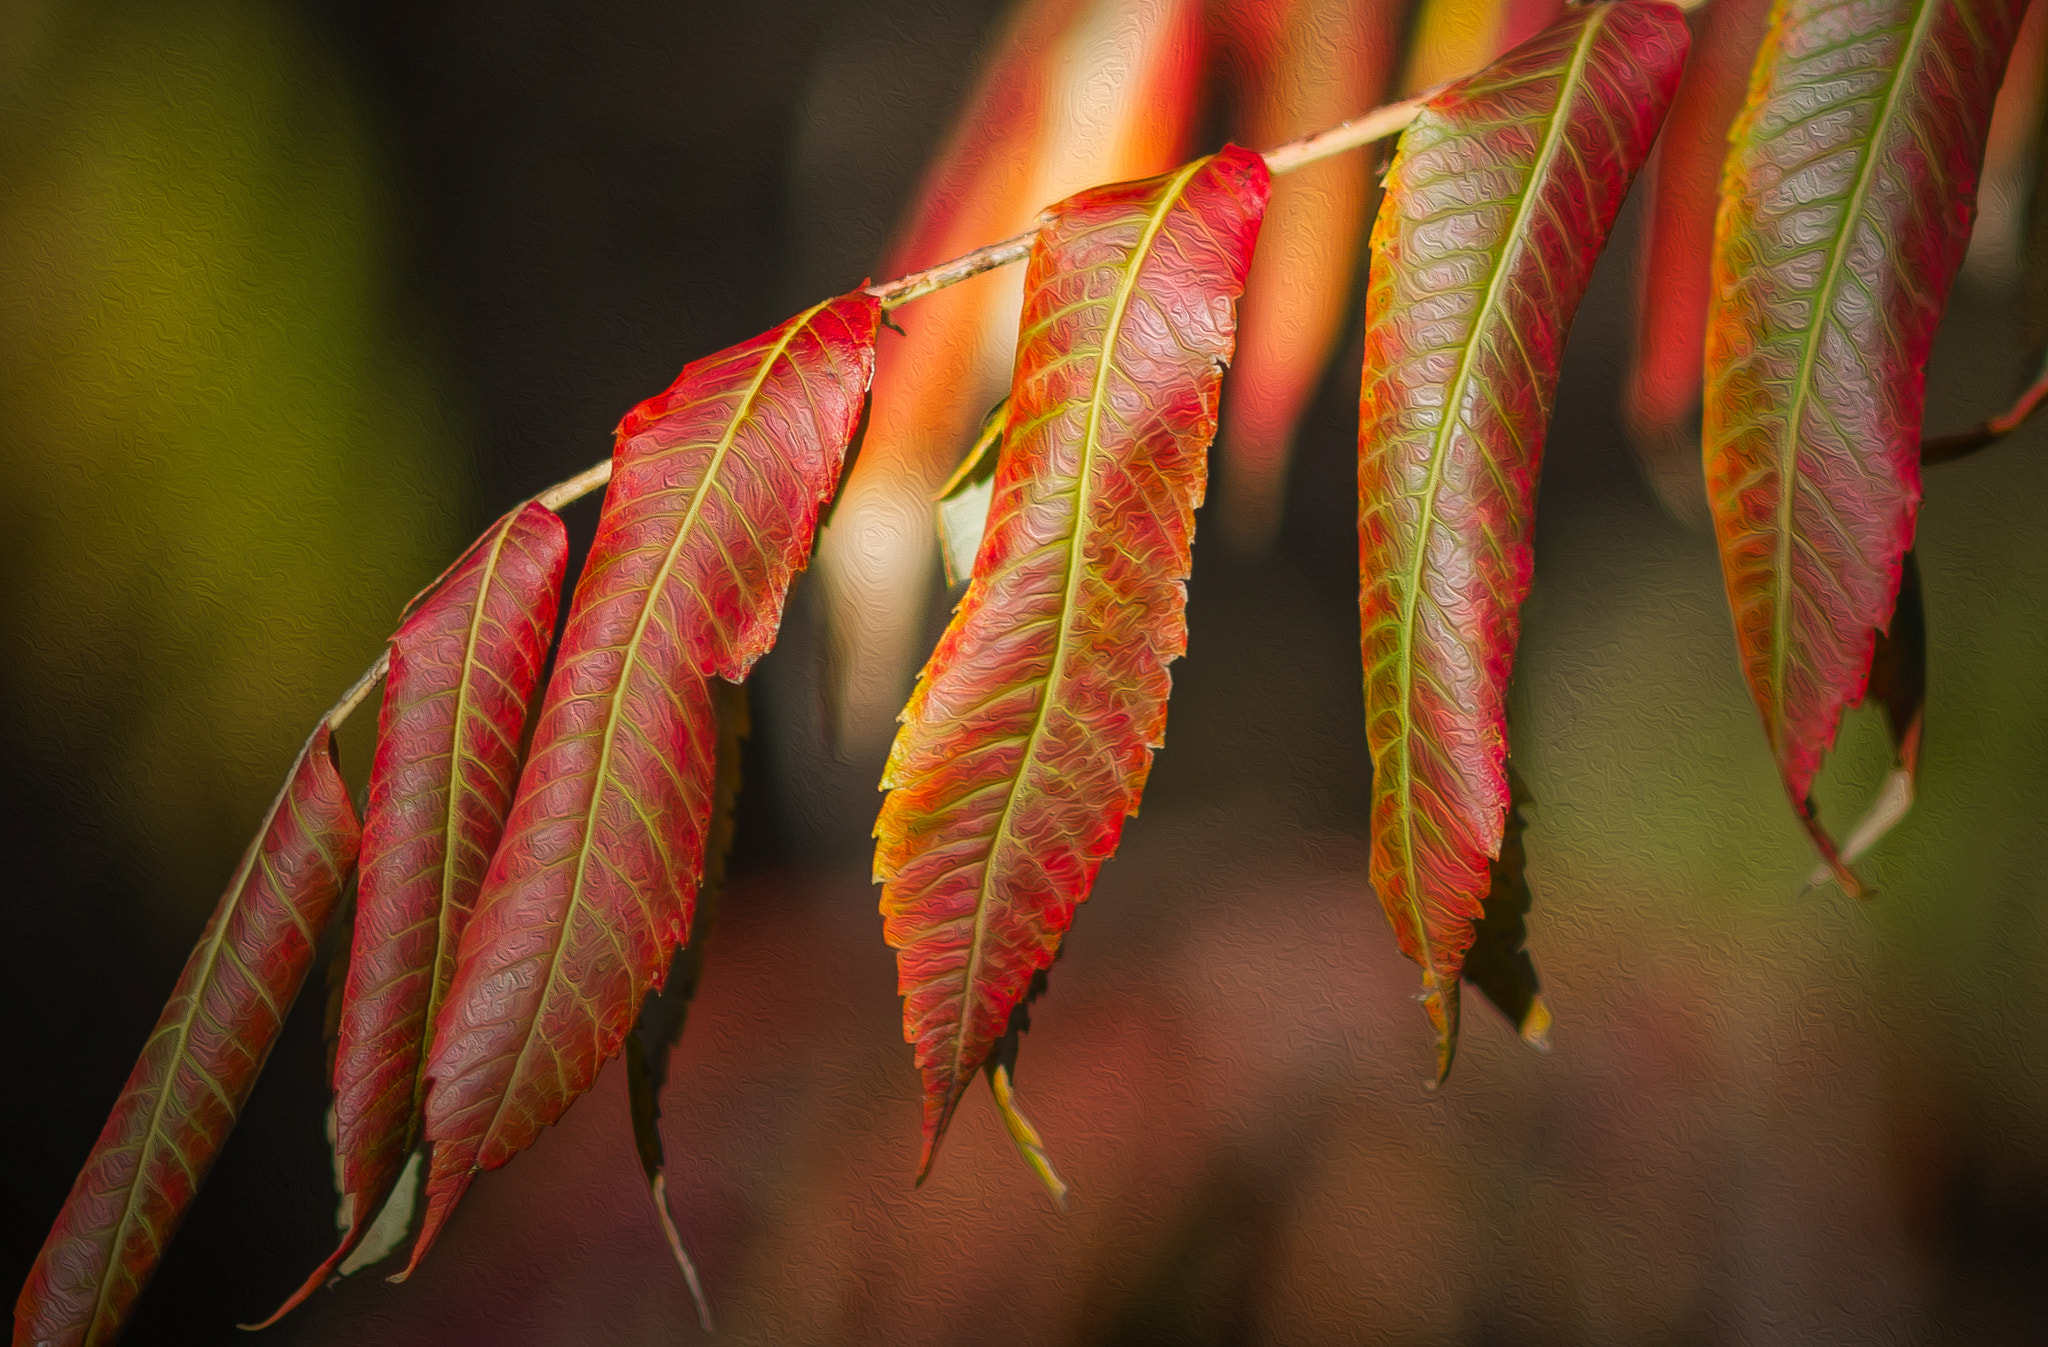 Photograph As the leaves turned red... by J-O Eriksson on 500px